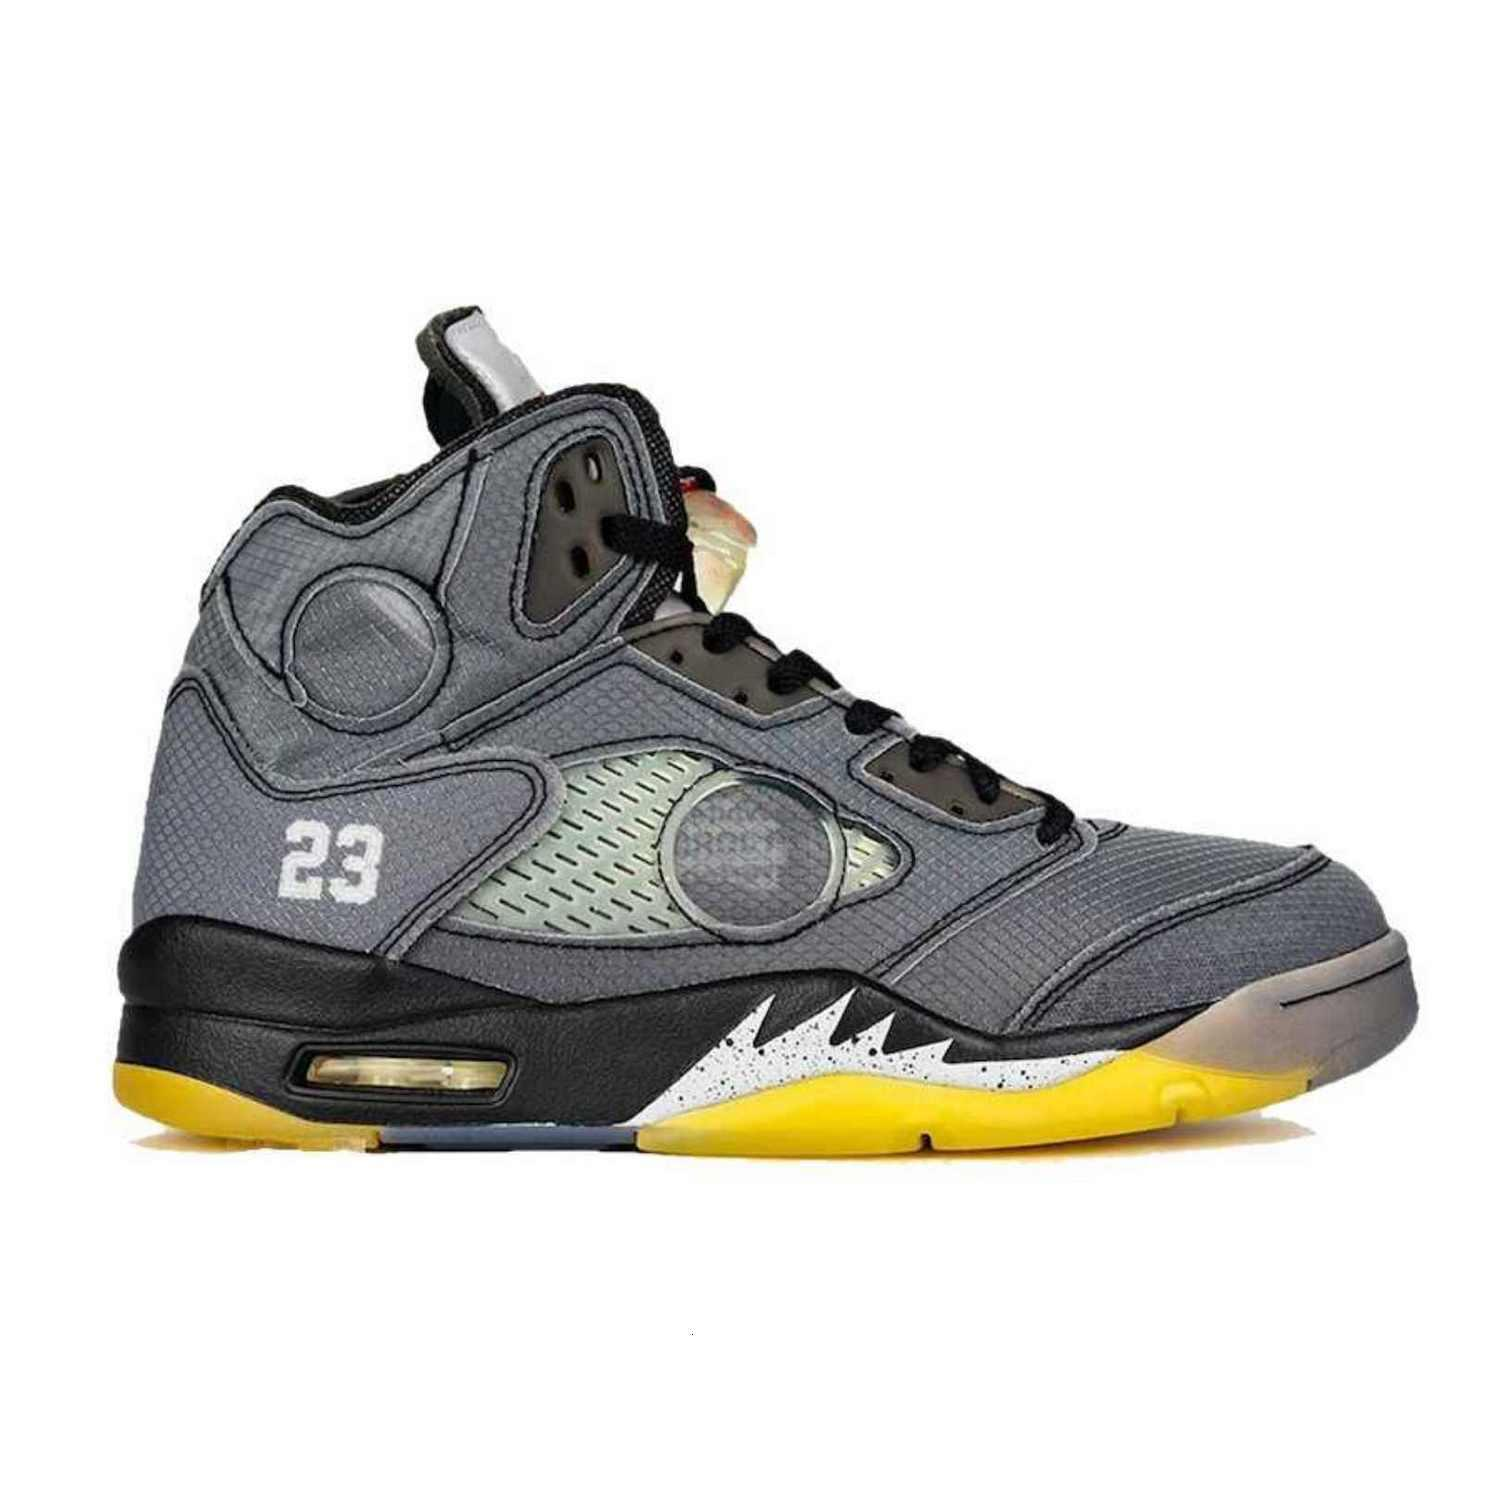 5 hole on tongue 5s black grey stitching reflection Basketball Shoes Top Factory Version mens trainers New 2020 Sneakers with Box